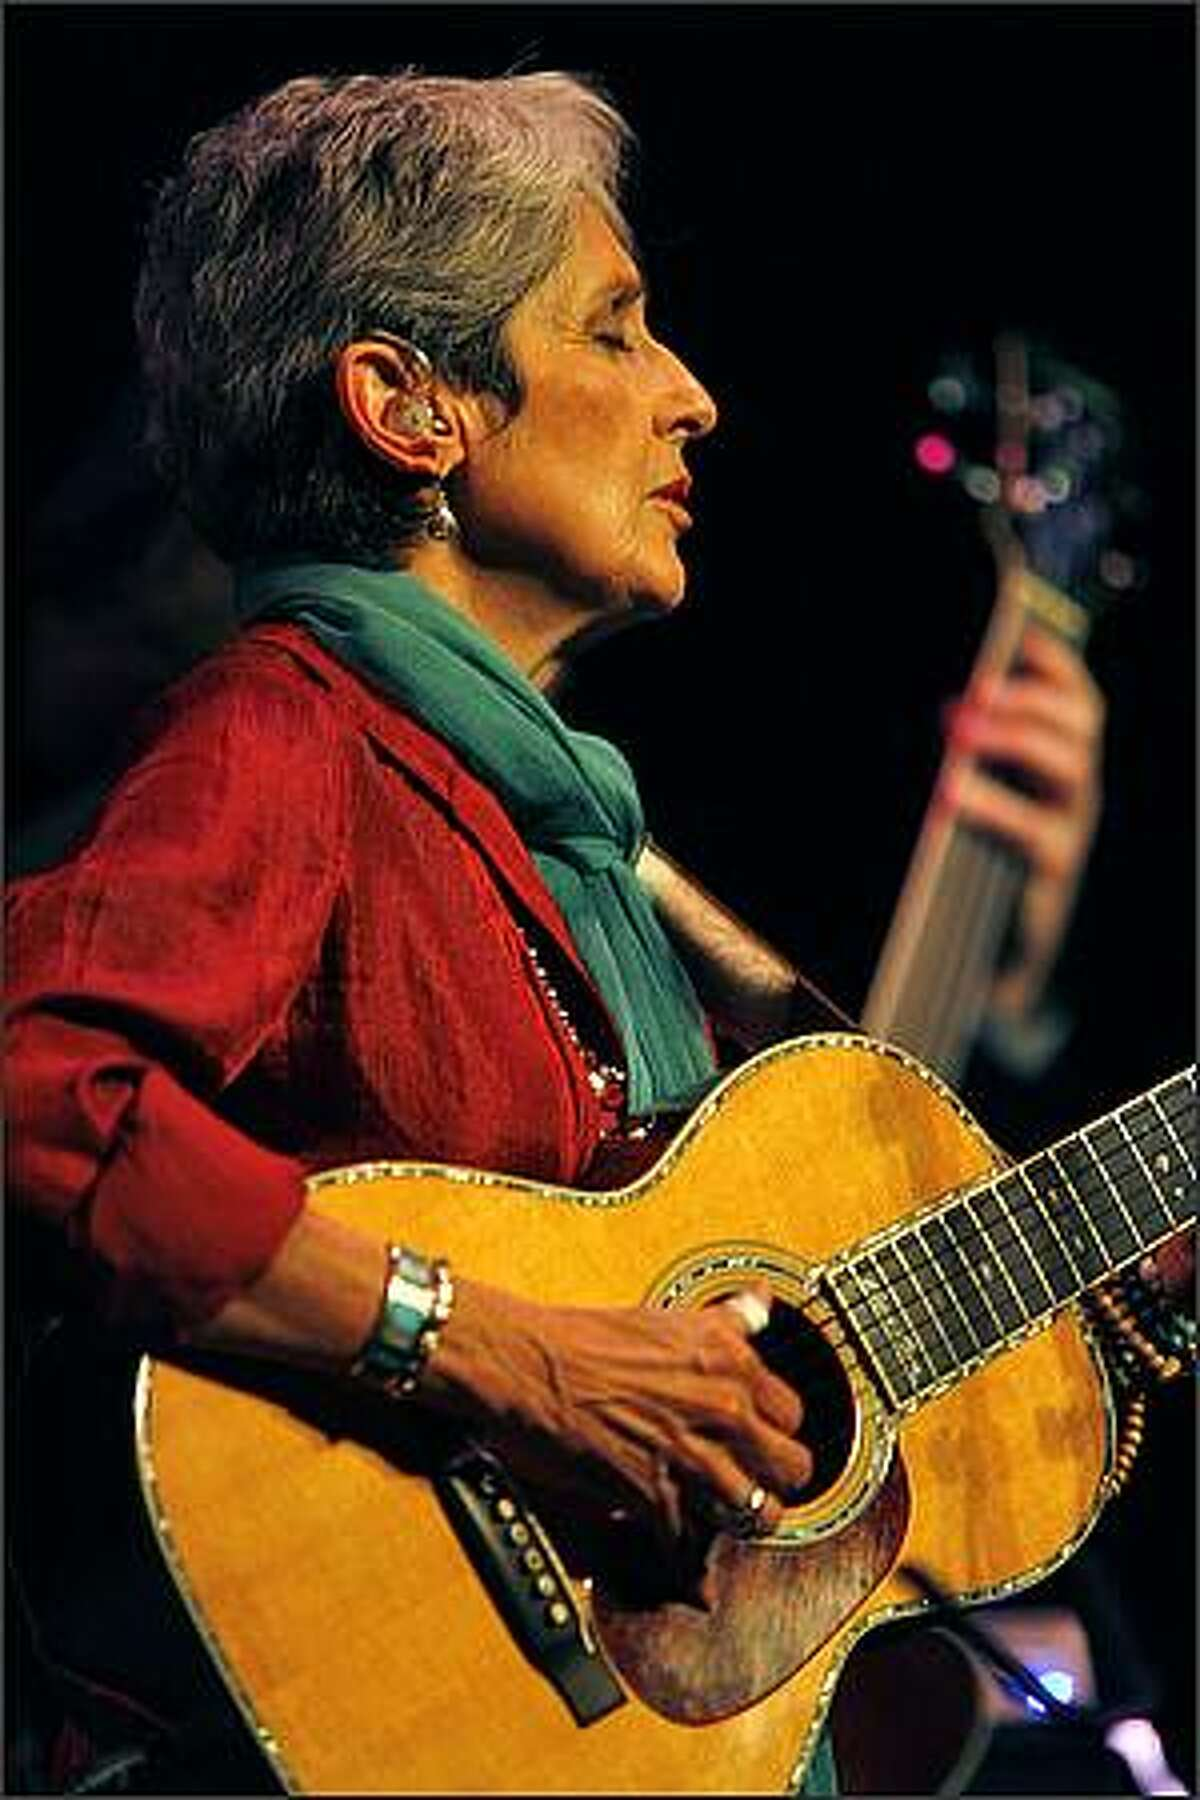 Joan Baez plays The Moore Theater in Seattle to promote her twenty-fourth studio album